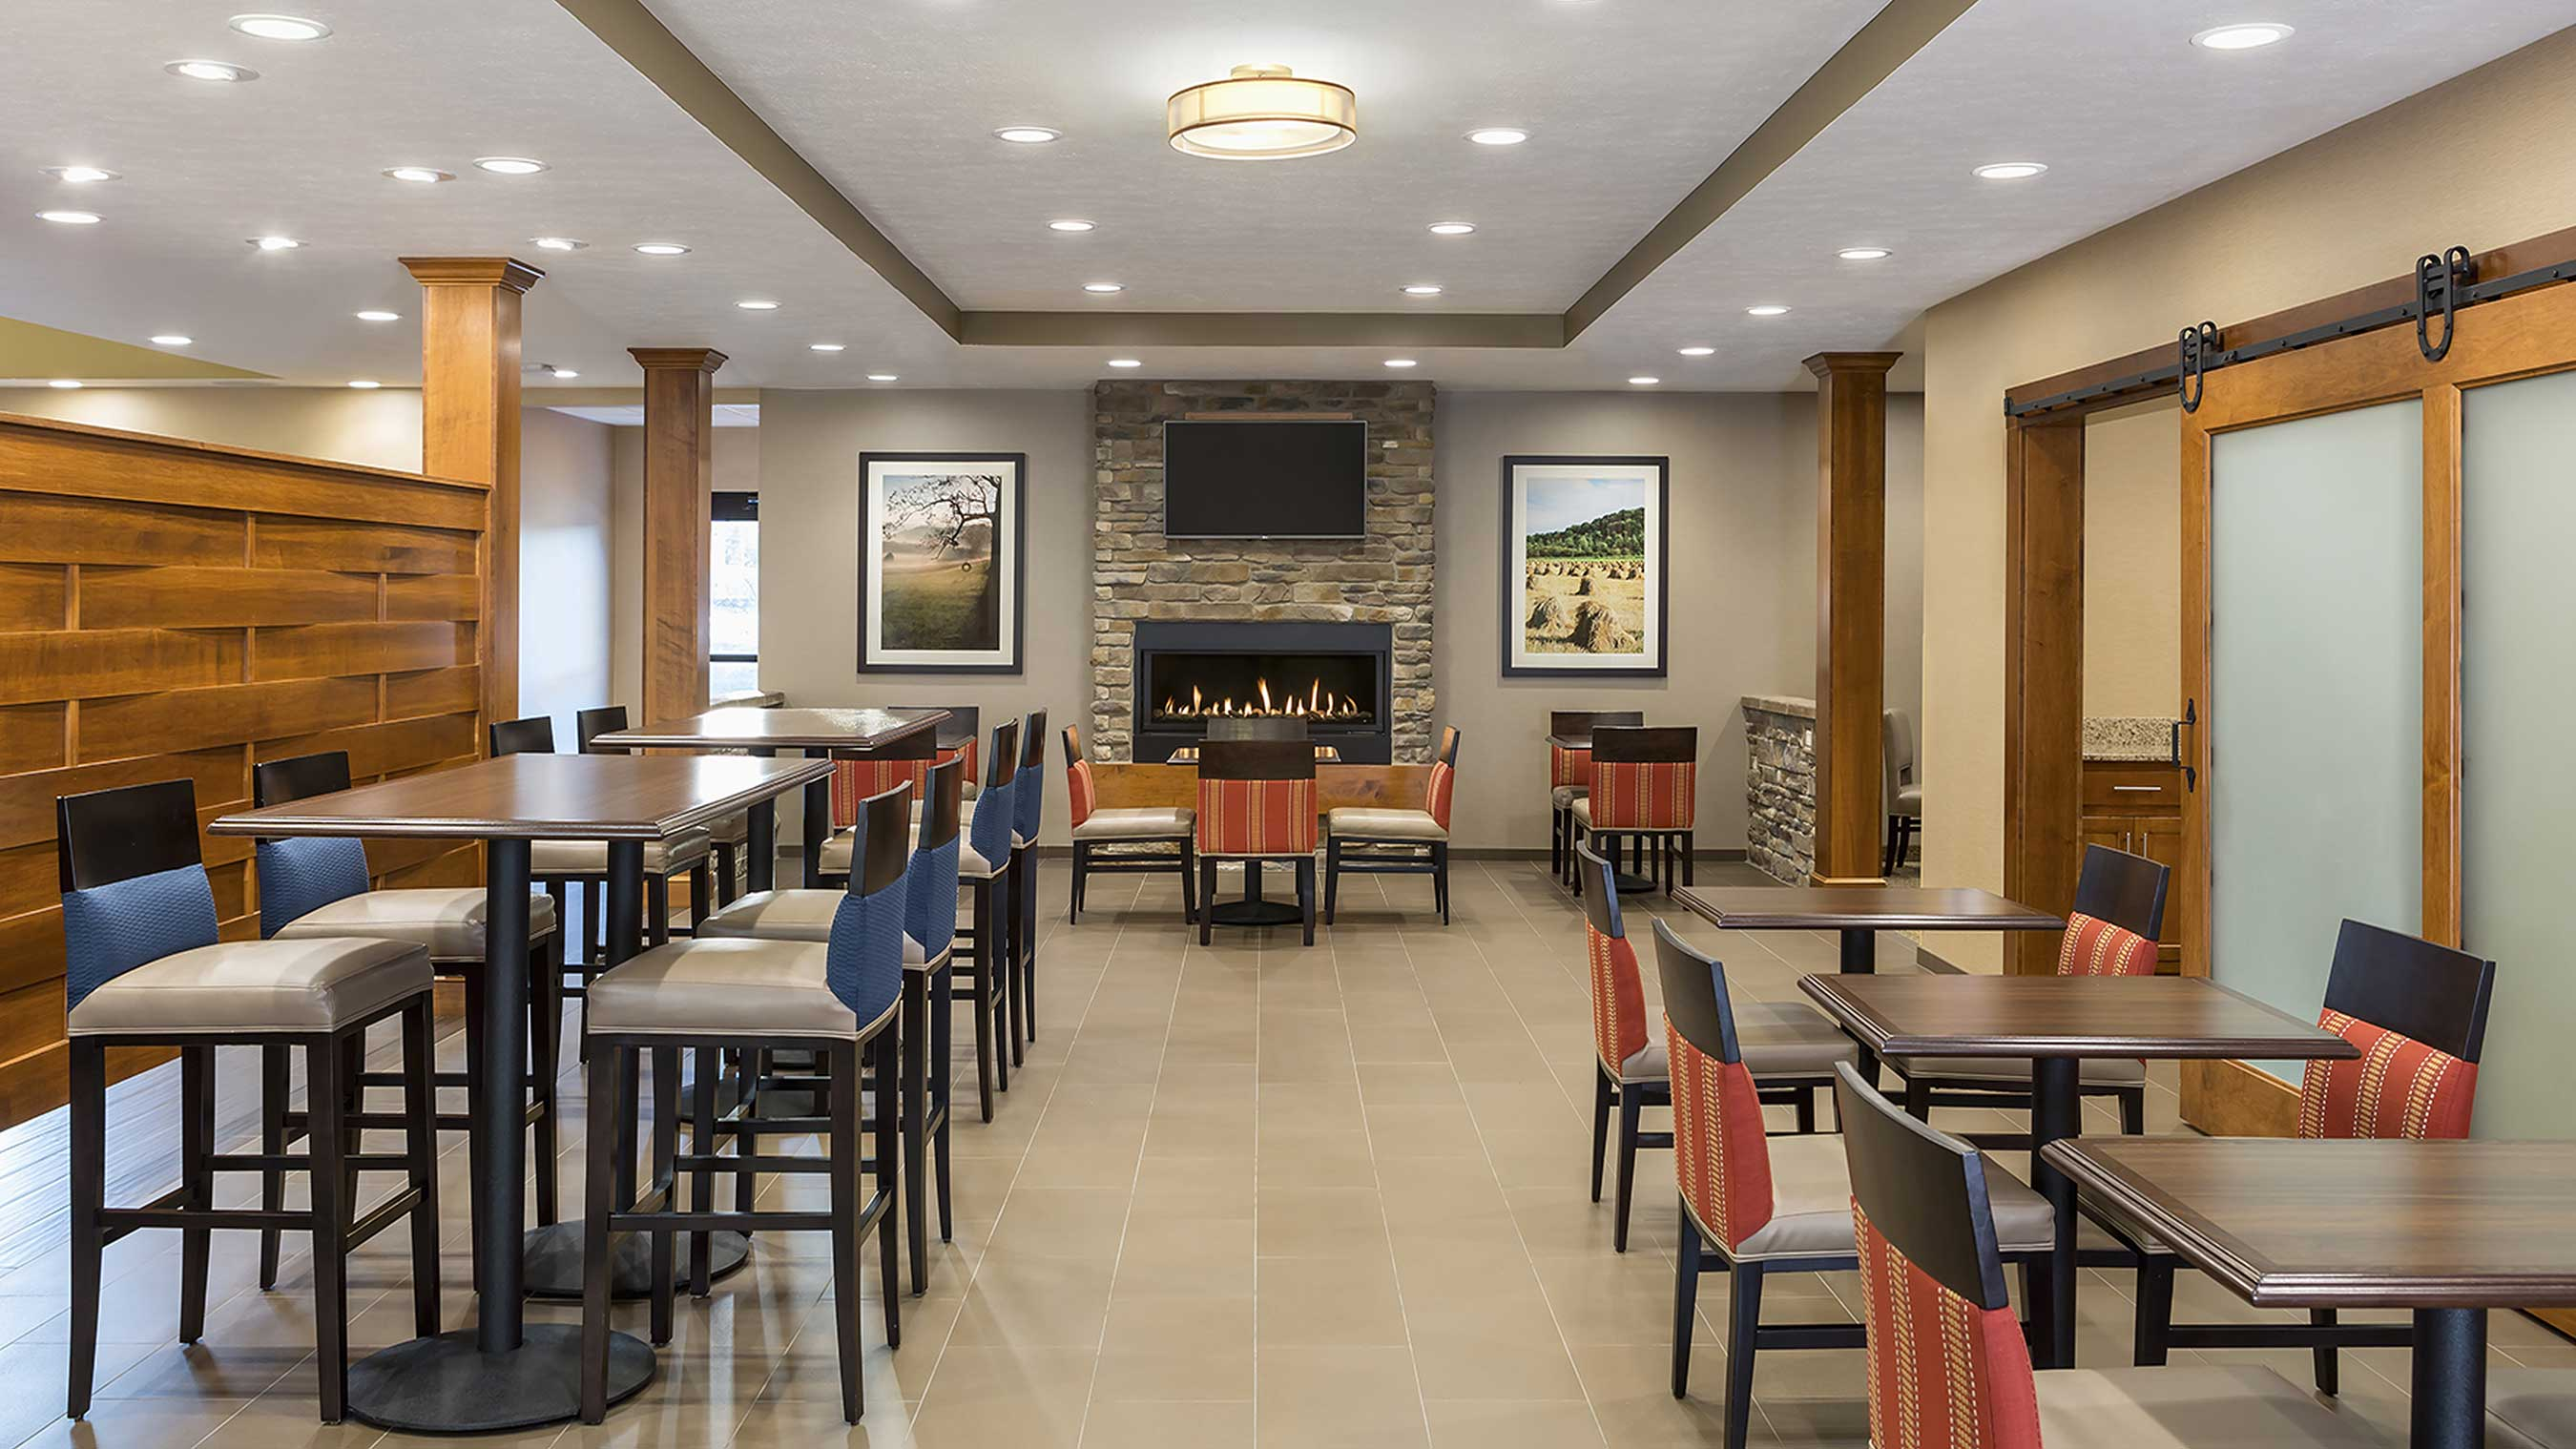 Enjoy breakfast in the dining hall at Comfort Hotels locations!